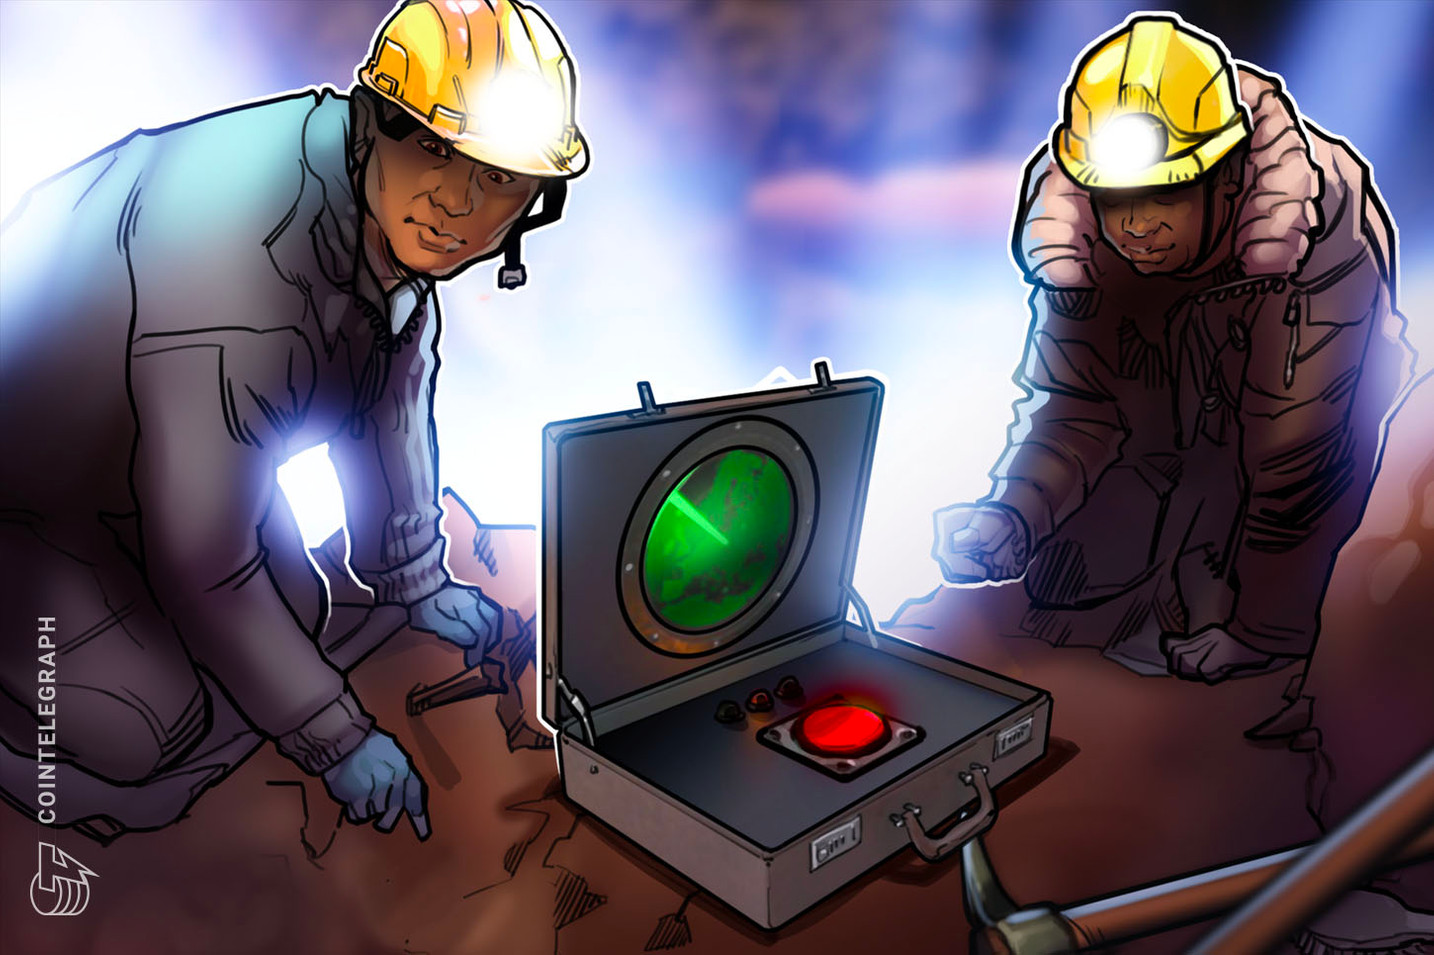 Venezuelan army starts mining Bitcoin to make ends meet